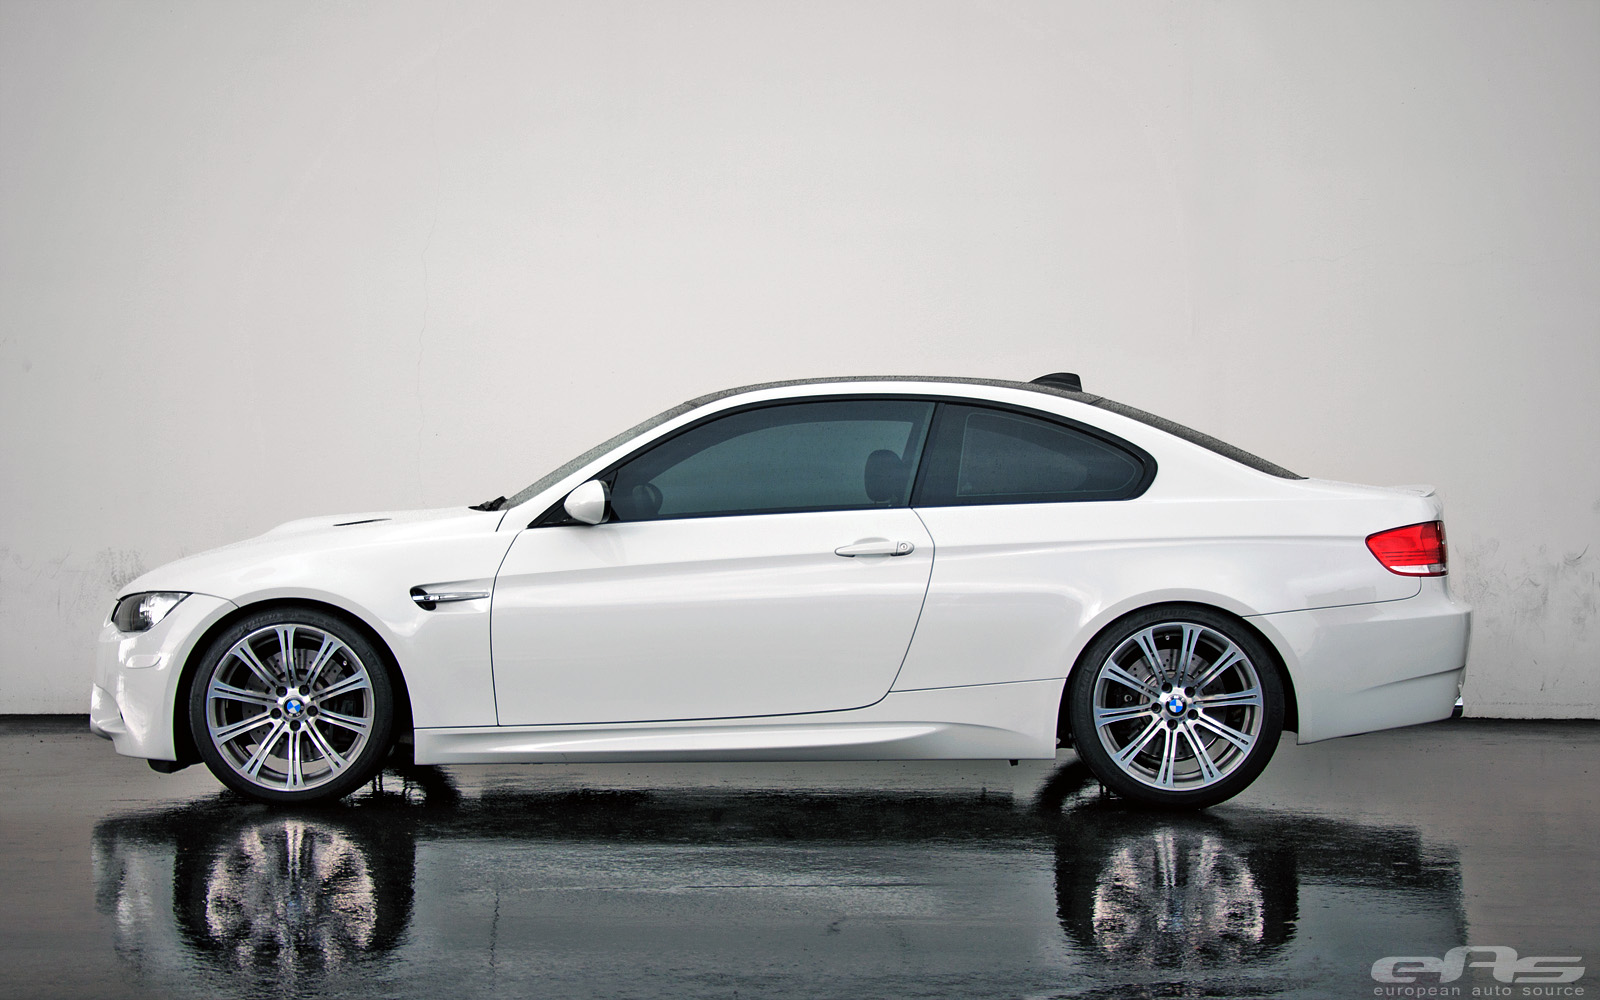 Alpine White E92 M3 Lowered on Swift Springs